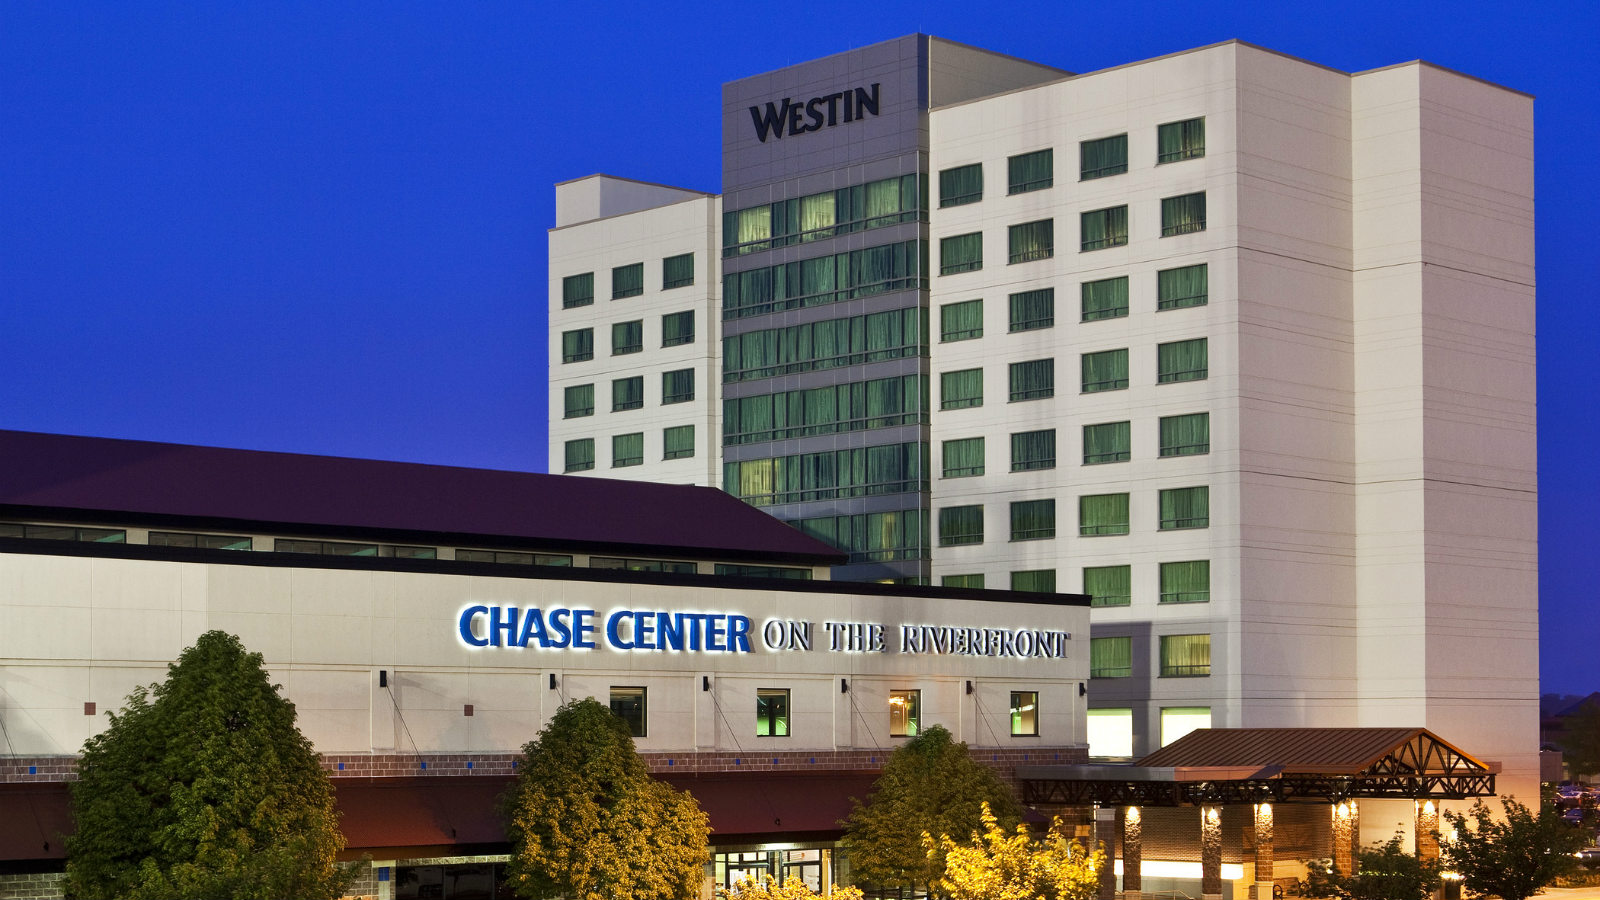 Things to do in Wilmington, DE - Chase Center